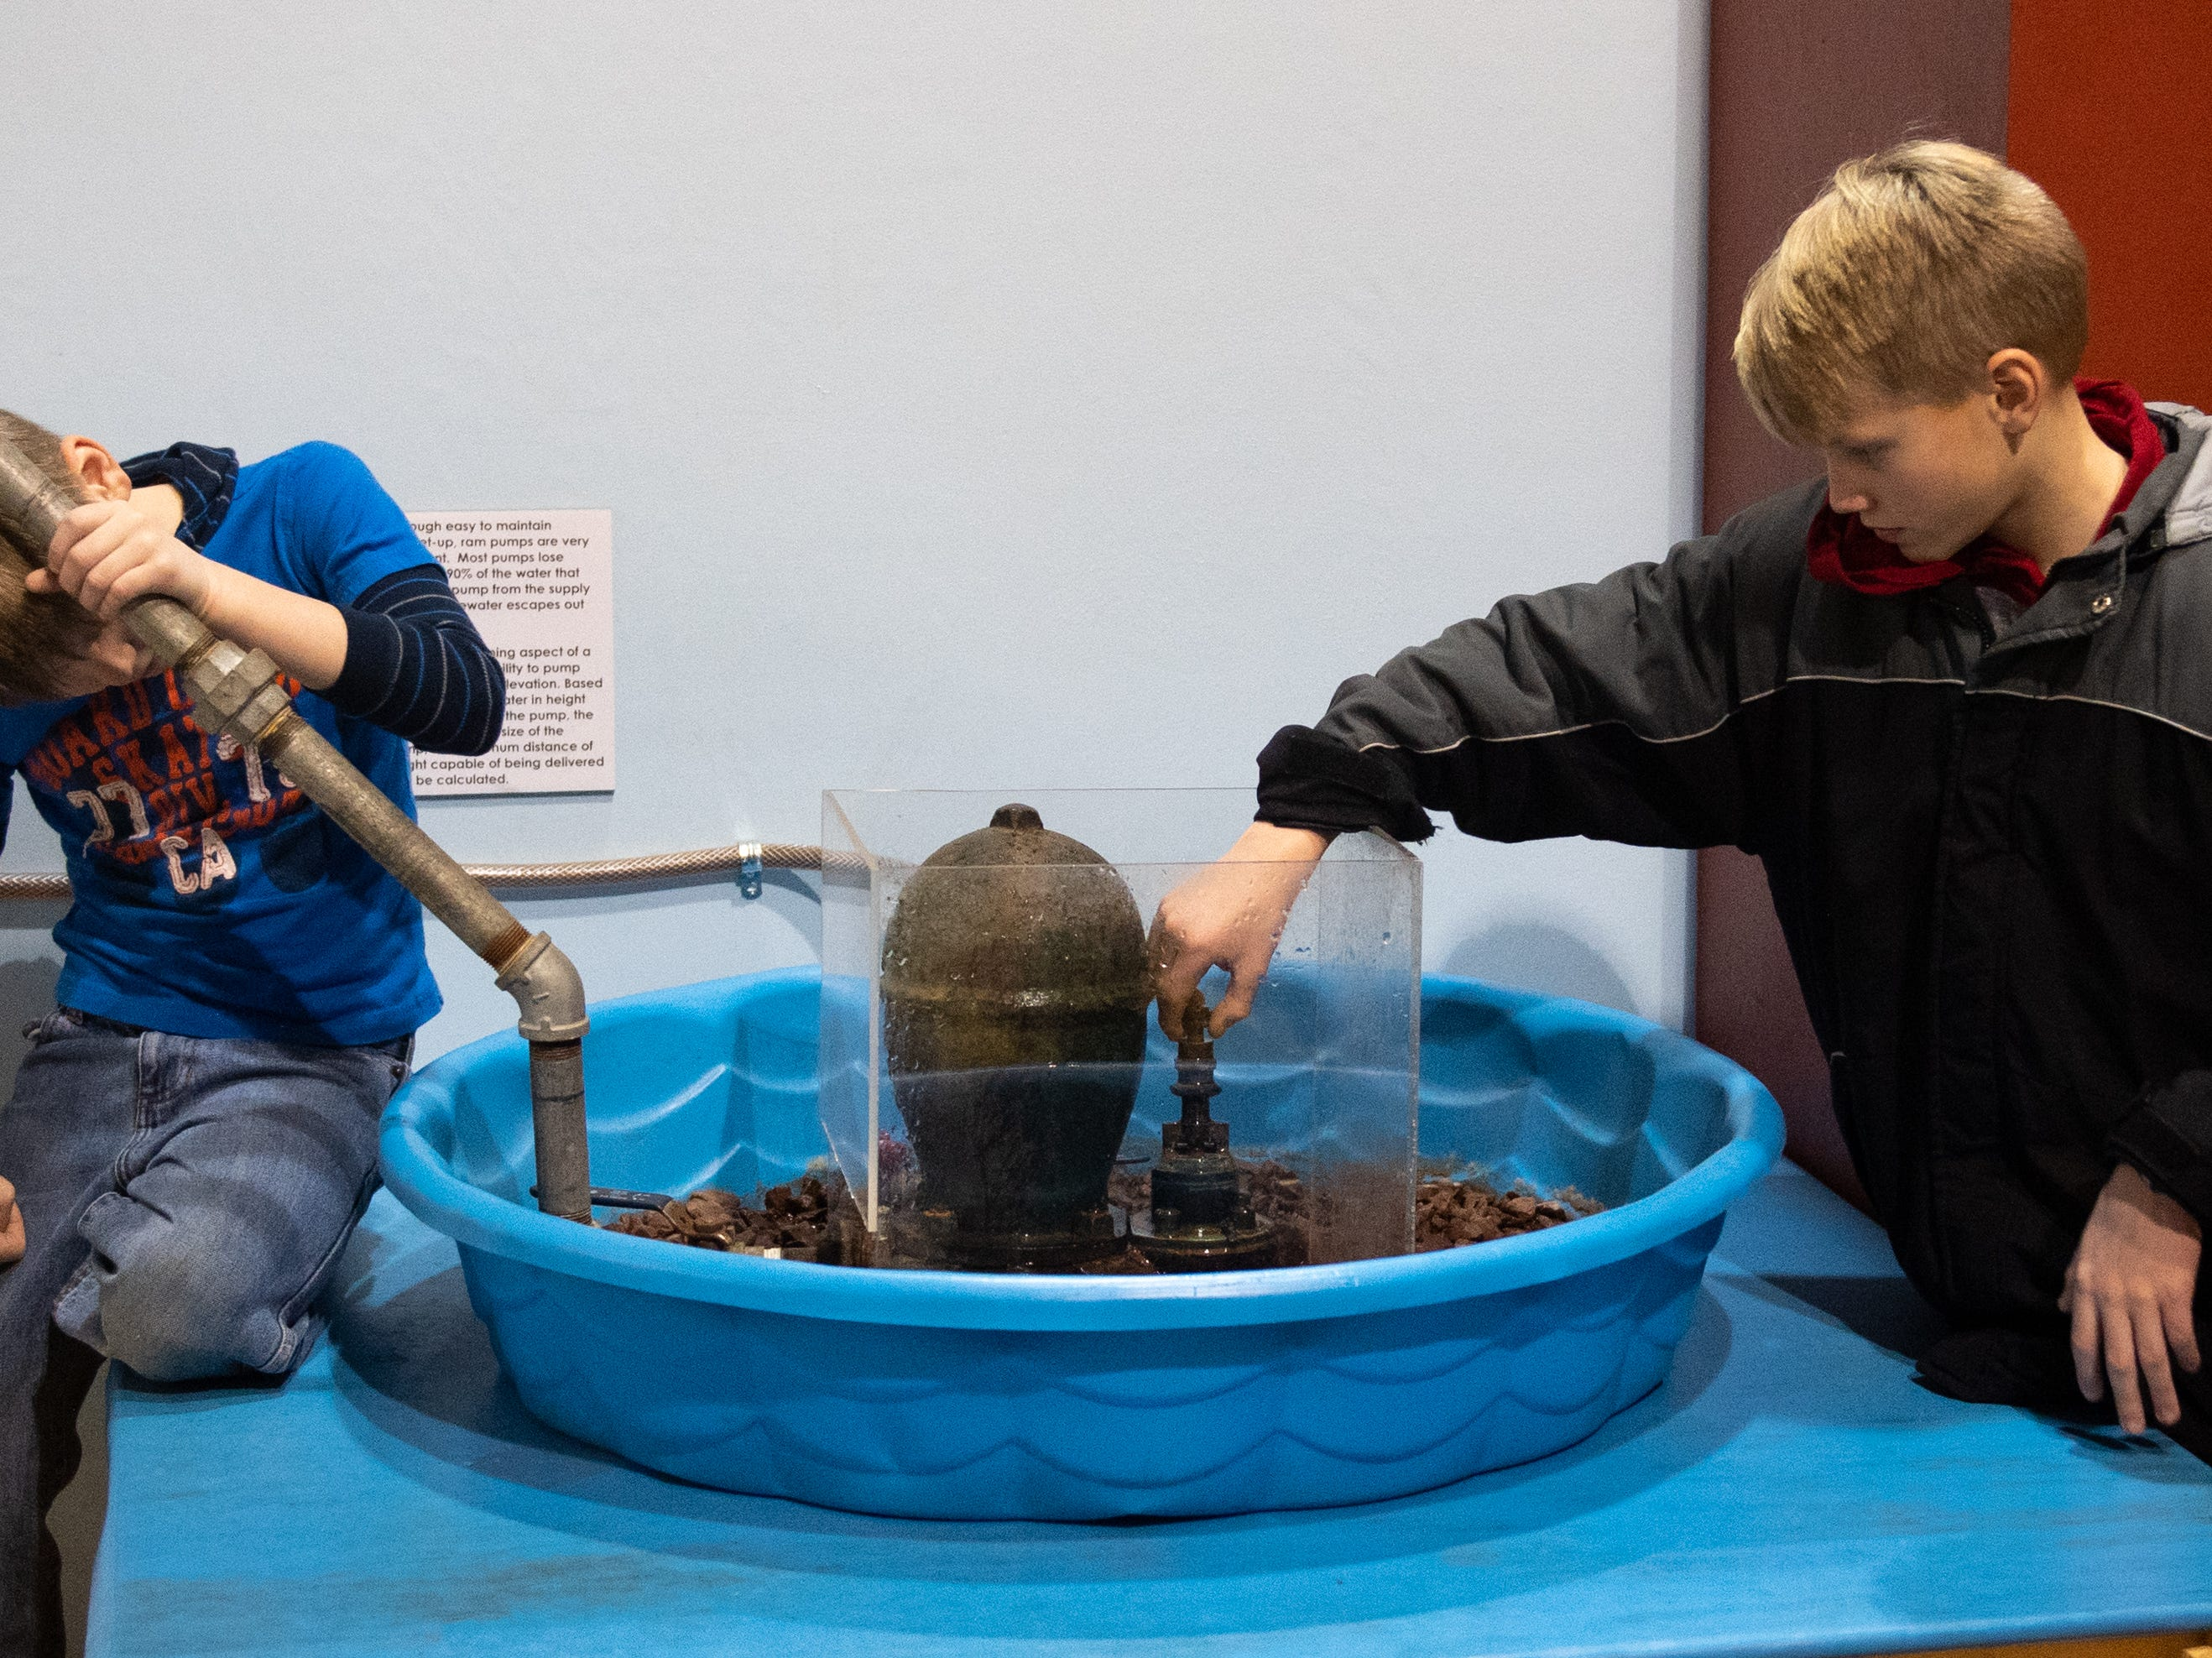 Ewrin Henz, 8, (left) and his brother Emory, 11, (right) of Stewartstown operate a pump during family activity day at the Agricultural and Industrial Museum, Friday, December 28, 2018.